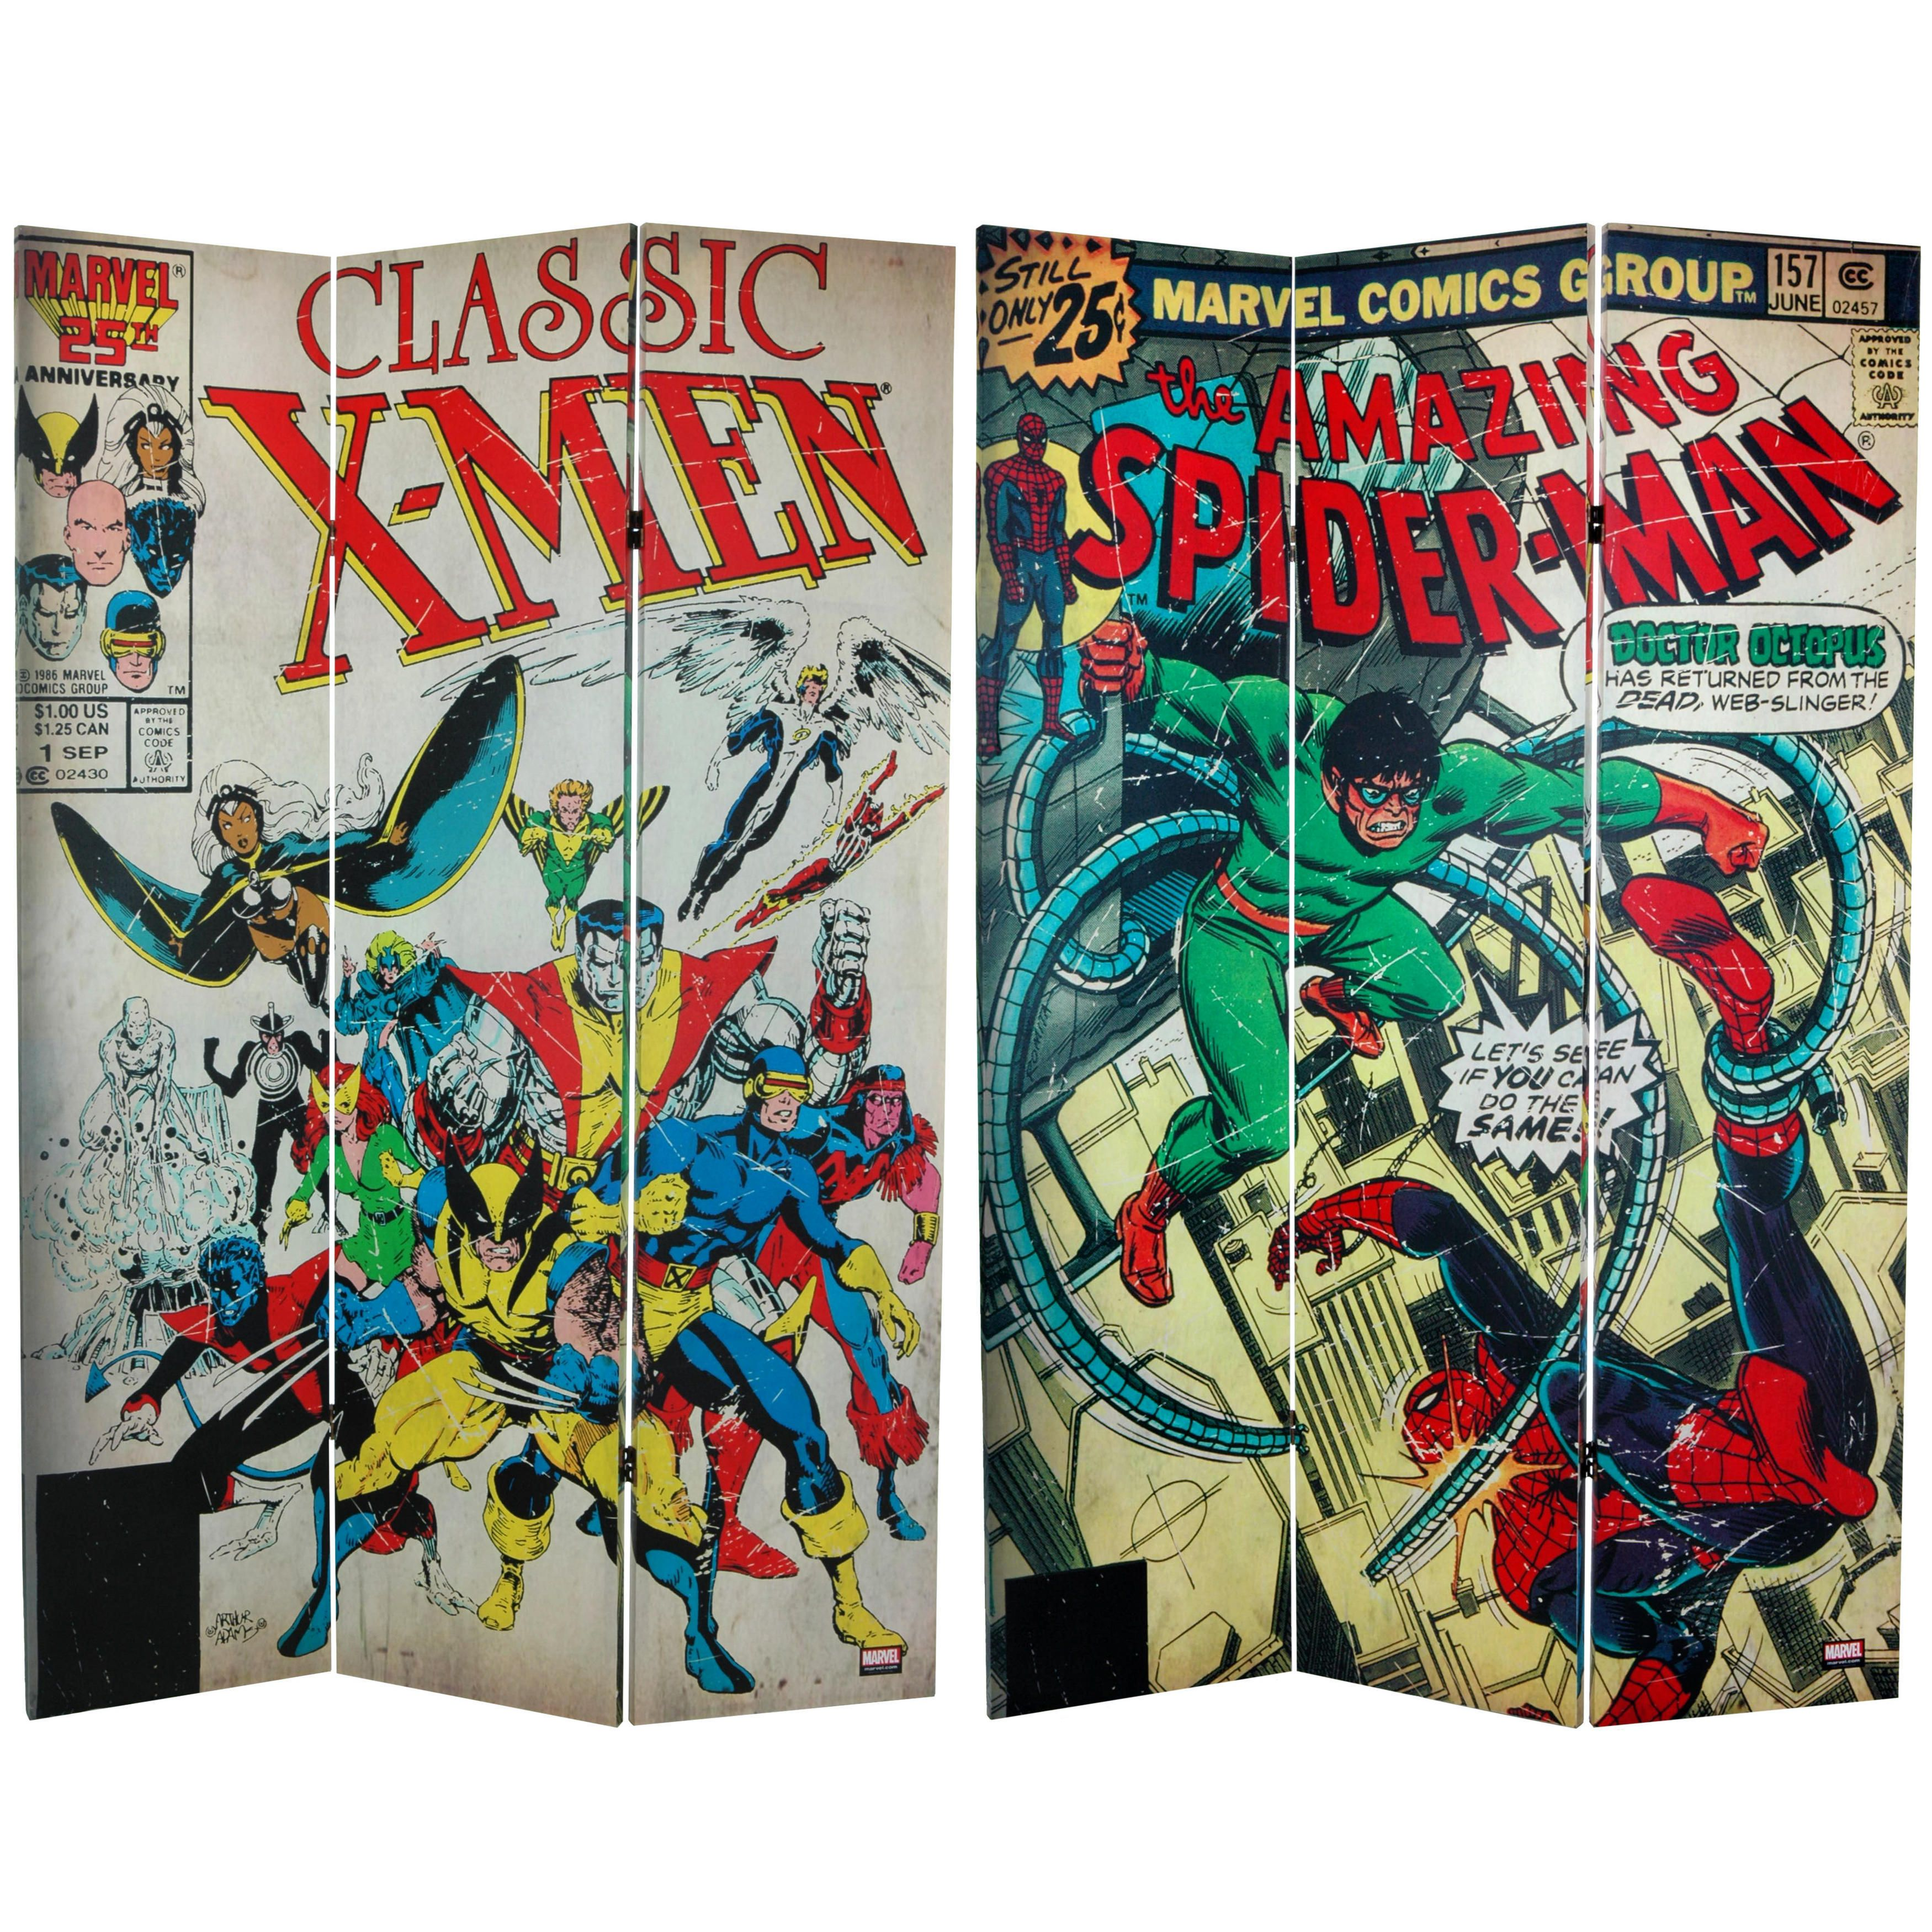 6-foot Tall Double Sided Spider-Man/ X-Men Canvas Room Divider | Overstock.com Shopping - The Best Deals on Decorative Screens